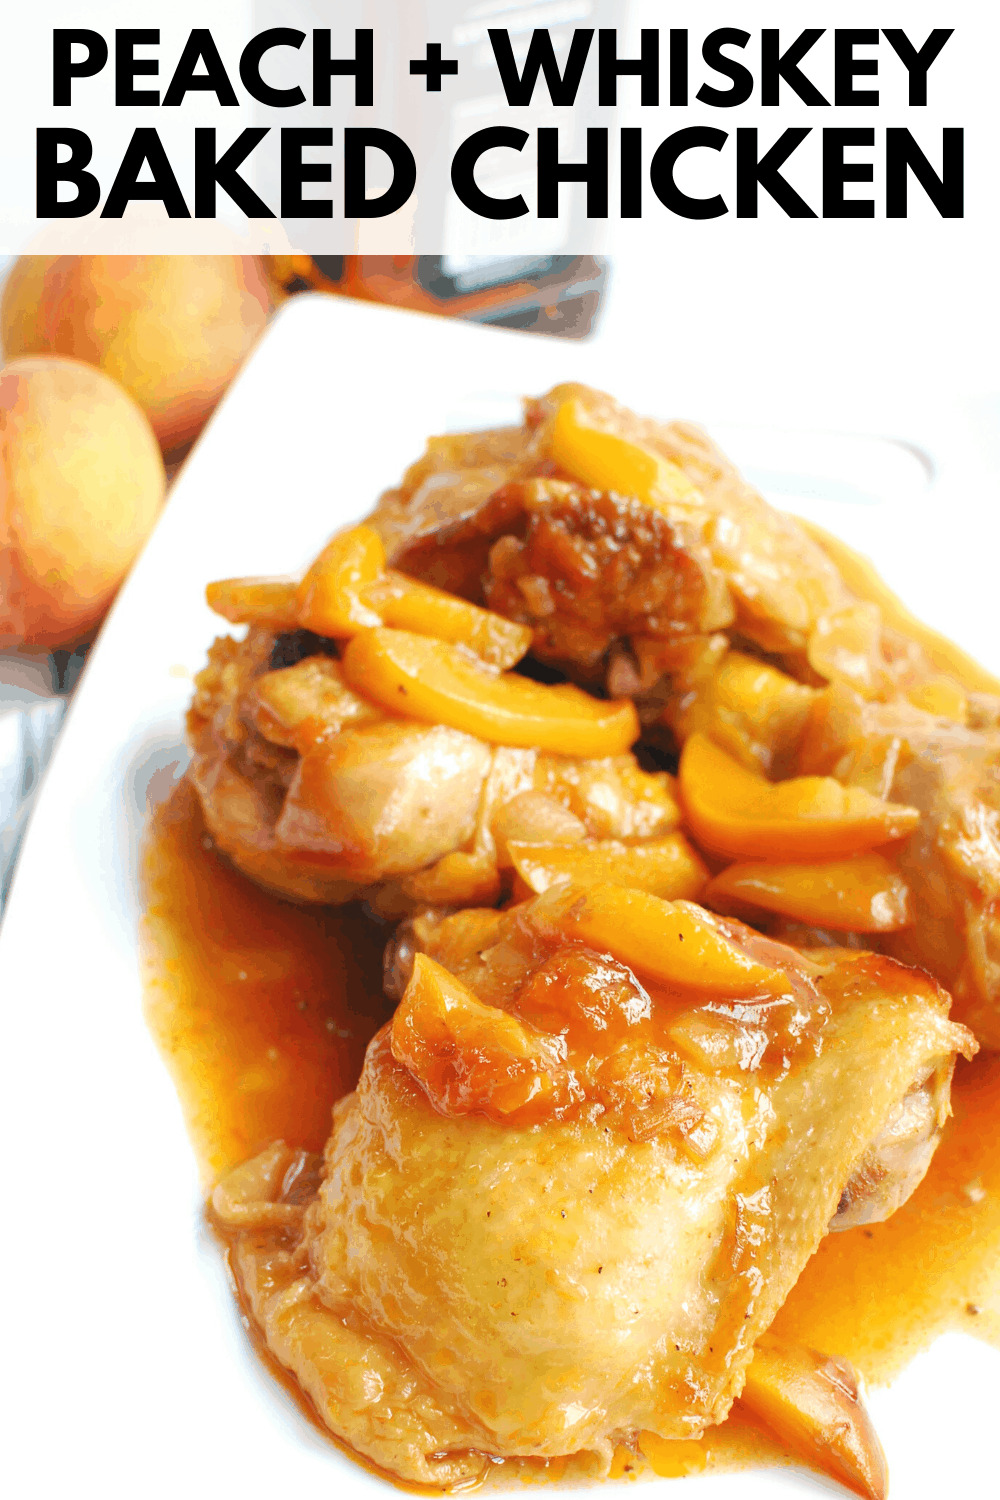 peach whiskey chicken on a white platter next to two peaches and a bottle of whiskey